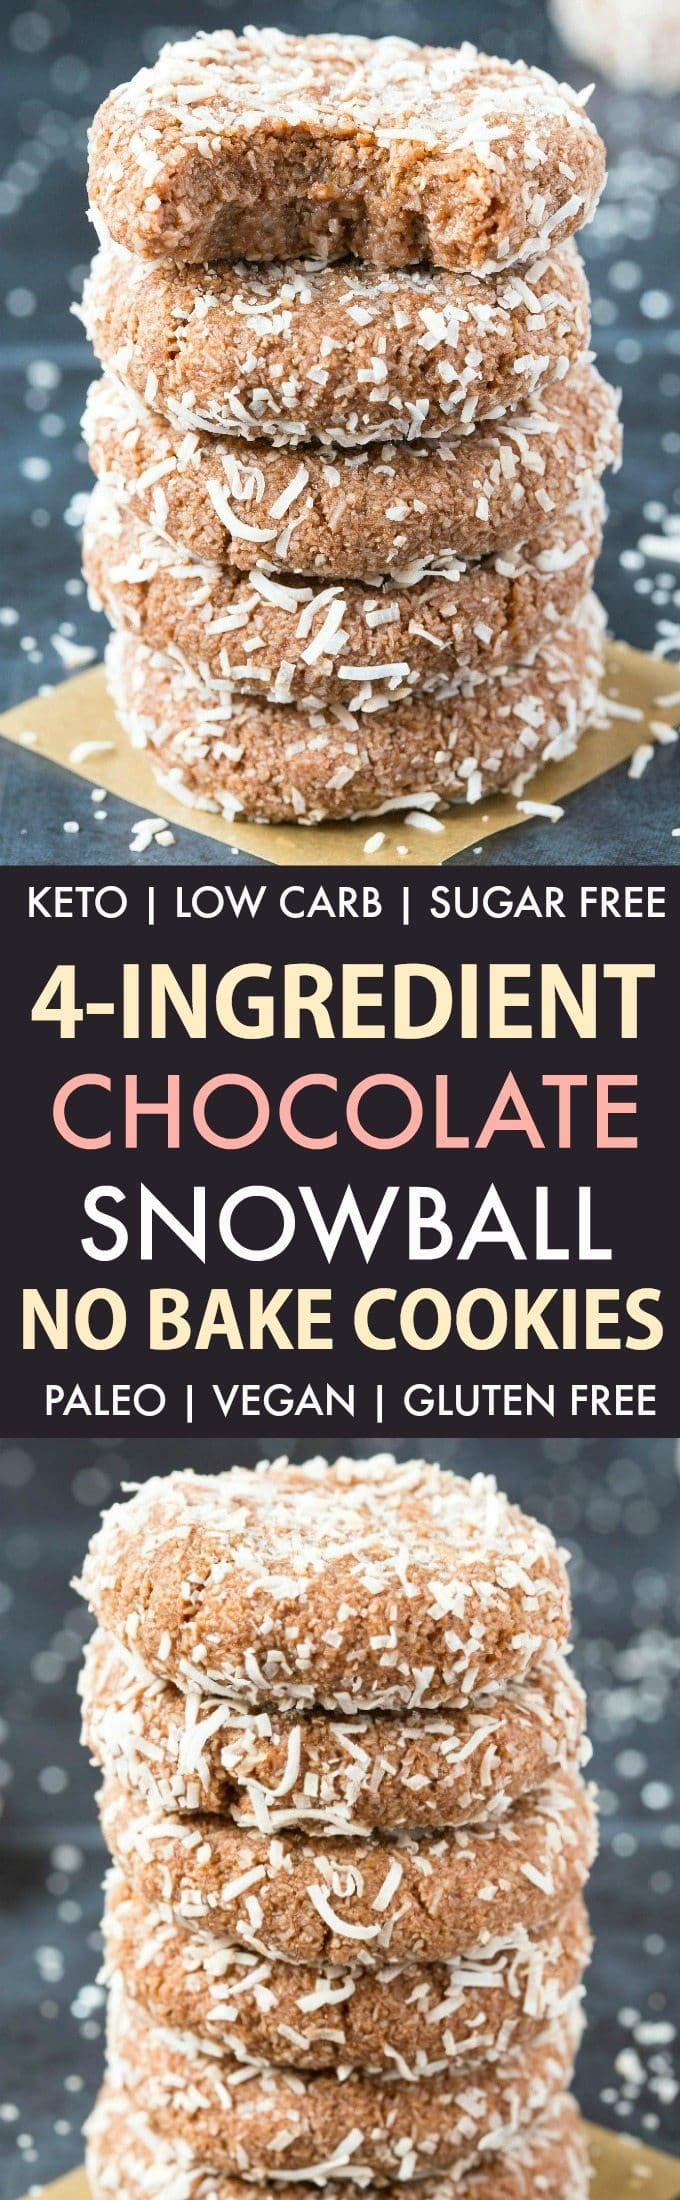 4 Ingredient No Bake Chocolate Snowball Cookies (Keto, Paleo, Vegan, Sugar Free)- An easy, 5-minute recipe for soft chocolate coconut snowballs, but made in a cookie shape! No condensed milk, sugar, or dairy needed and super low carb. #lowcarbrecipe #nobakecookies #ketodessert #lowcarb #sugarfree | Recipe on thebigmansworld.com